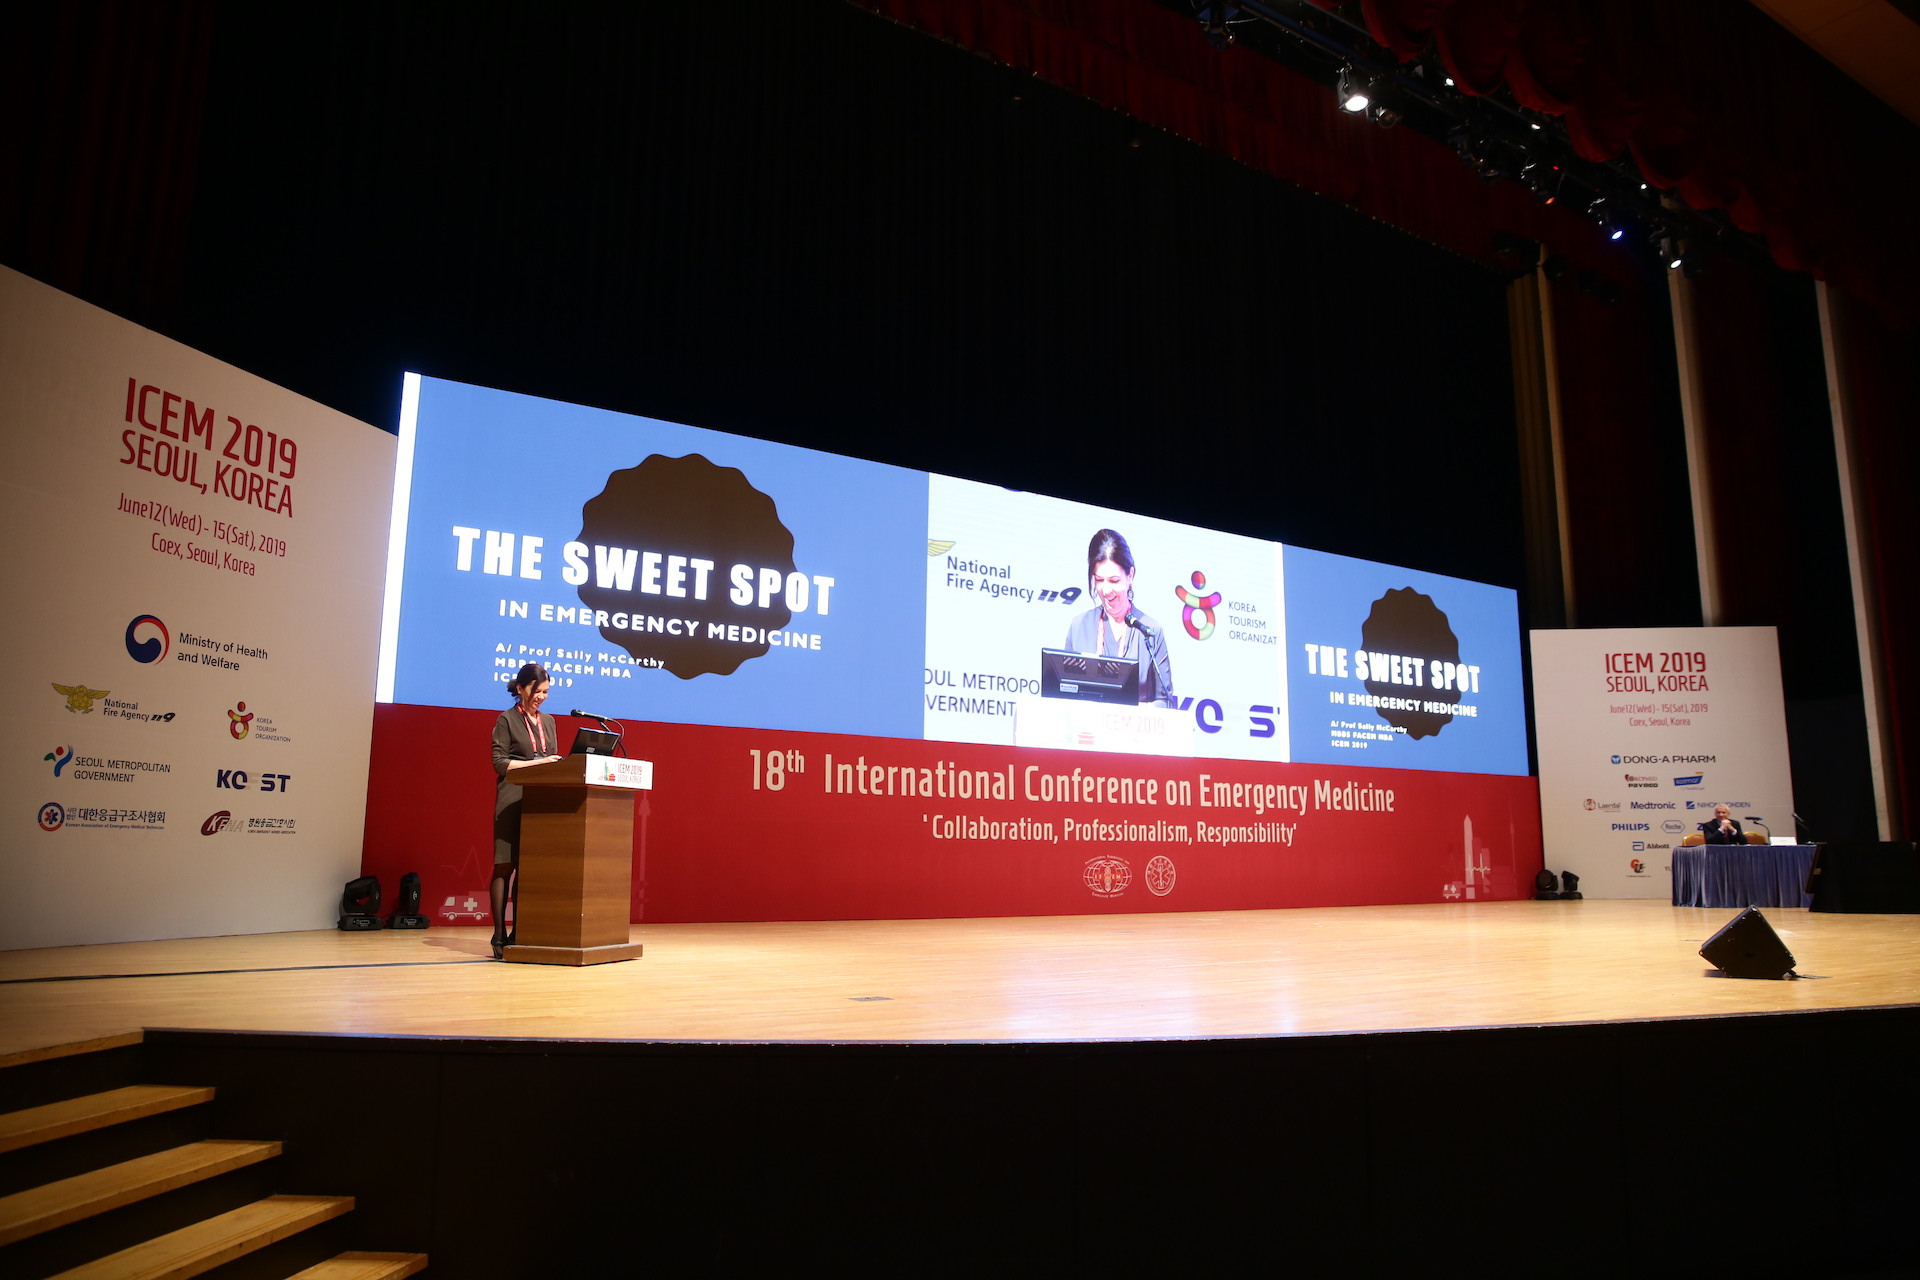 SEOUL HOSTS WORLD'S LARGEST EMERGENCY MEDICINE CON